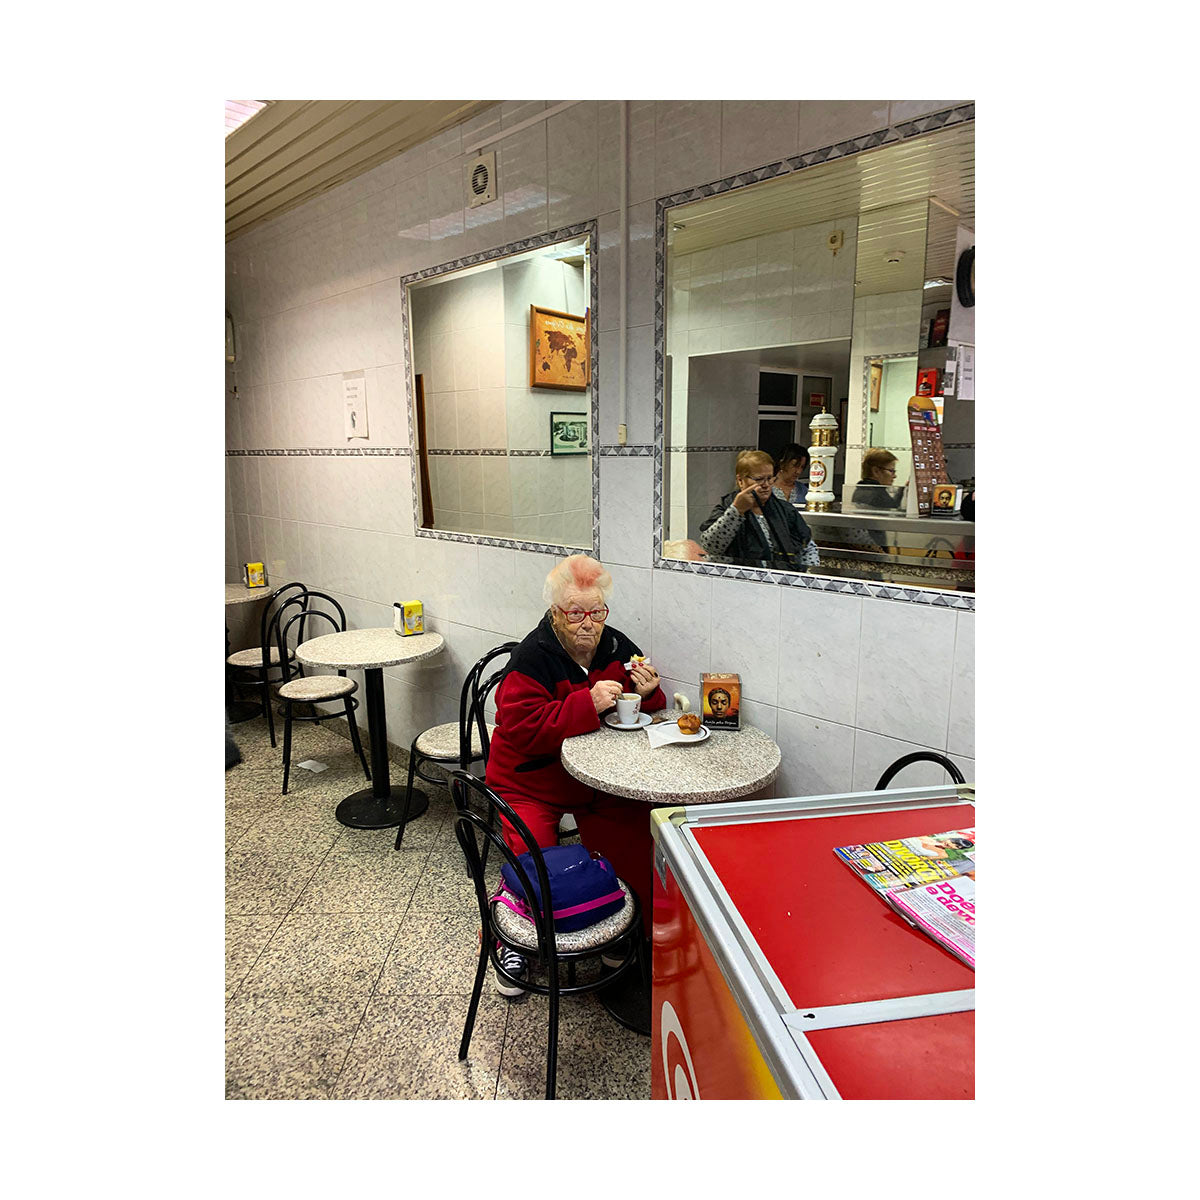 Lady during breakfast by Yago Barbosa - photography print